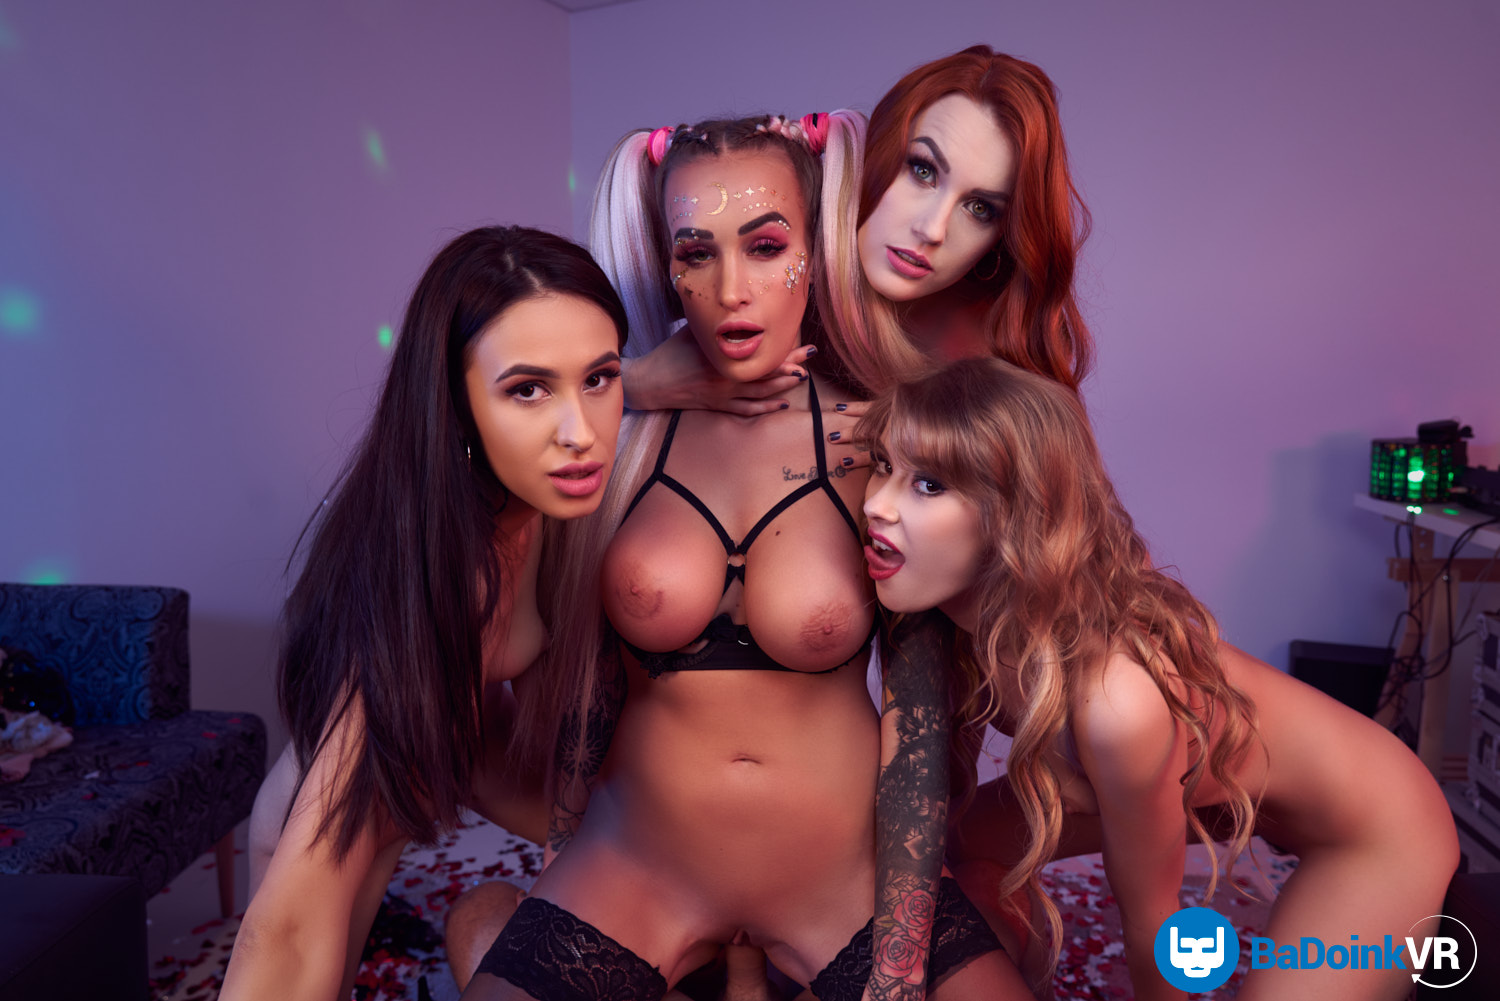 The Bangover - Charlie Red VR Porn - Eyla Moore VR Porn - Daisy Lee VR Porn - Alyssa Bounty VR Porn - Charlie Red Virtual Reality Porn - Eyla Moore Virtual Reality Porn - Daisy Lee Virtual Reality Porn - Alyssa Bounty Virtual Reality Porn